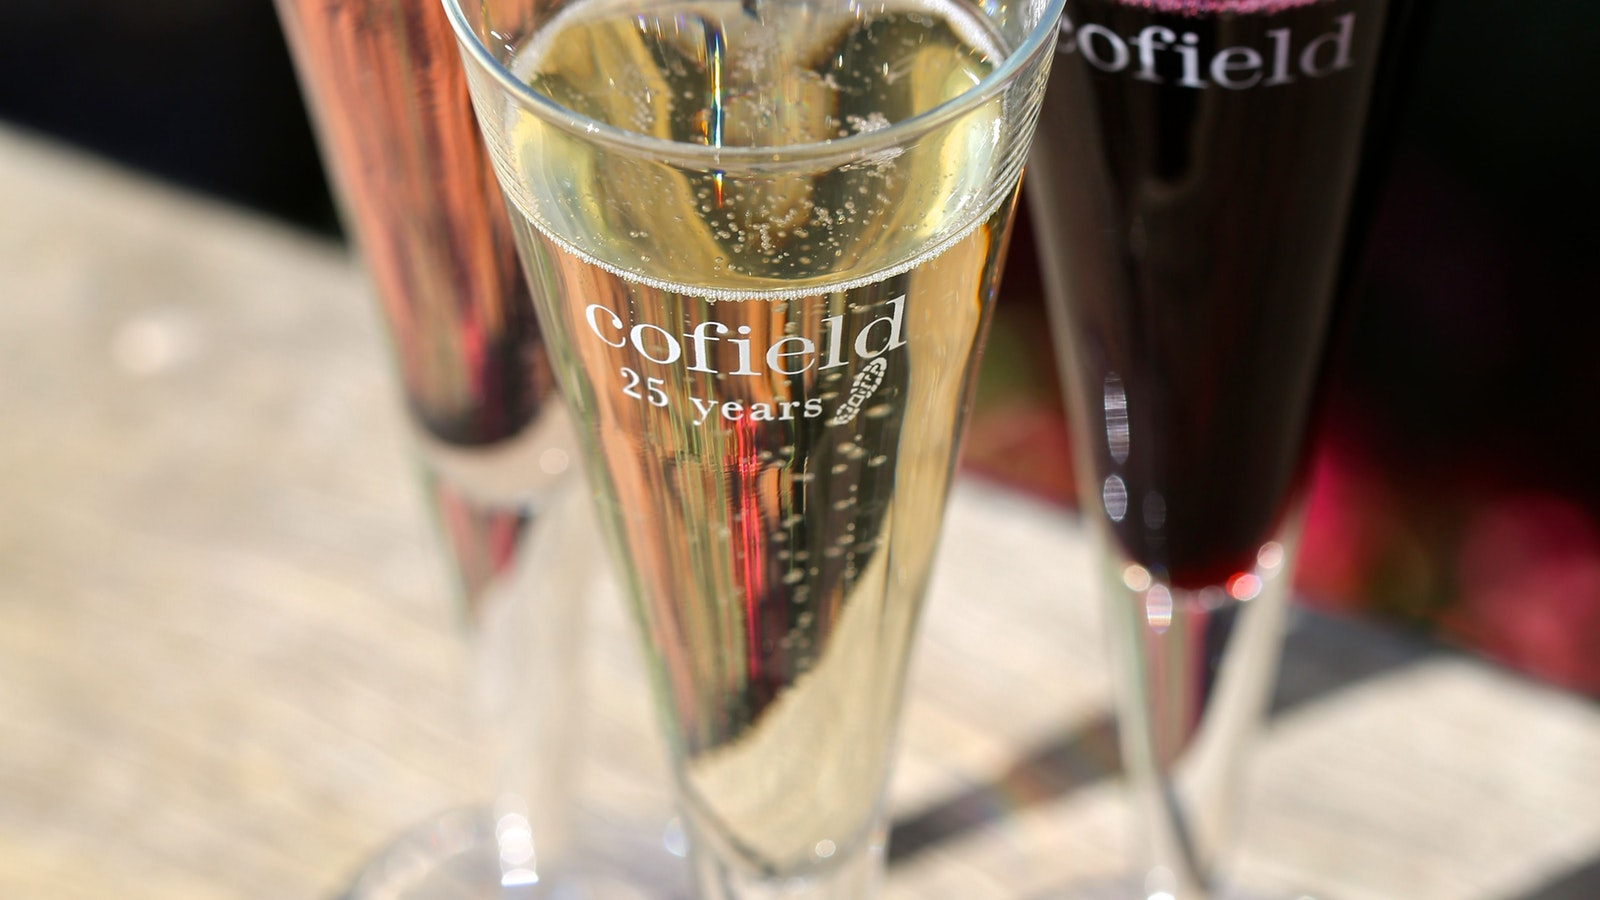 Cofield Wines are Sparkling Wine Specialists